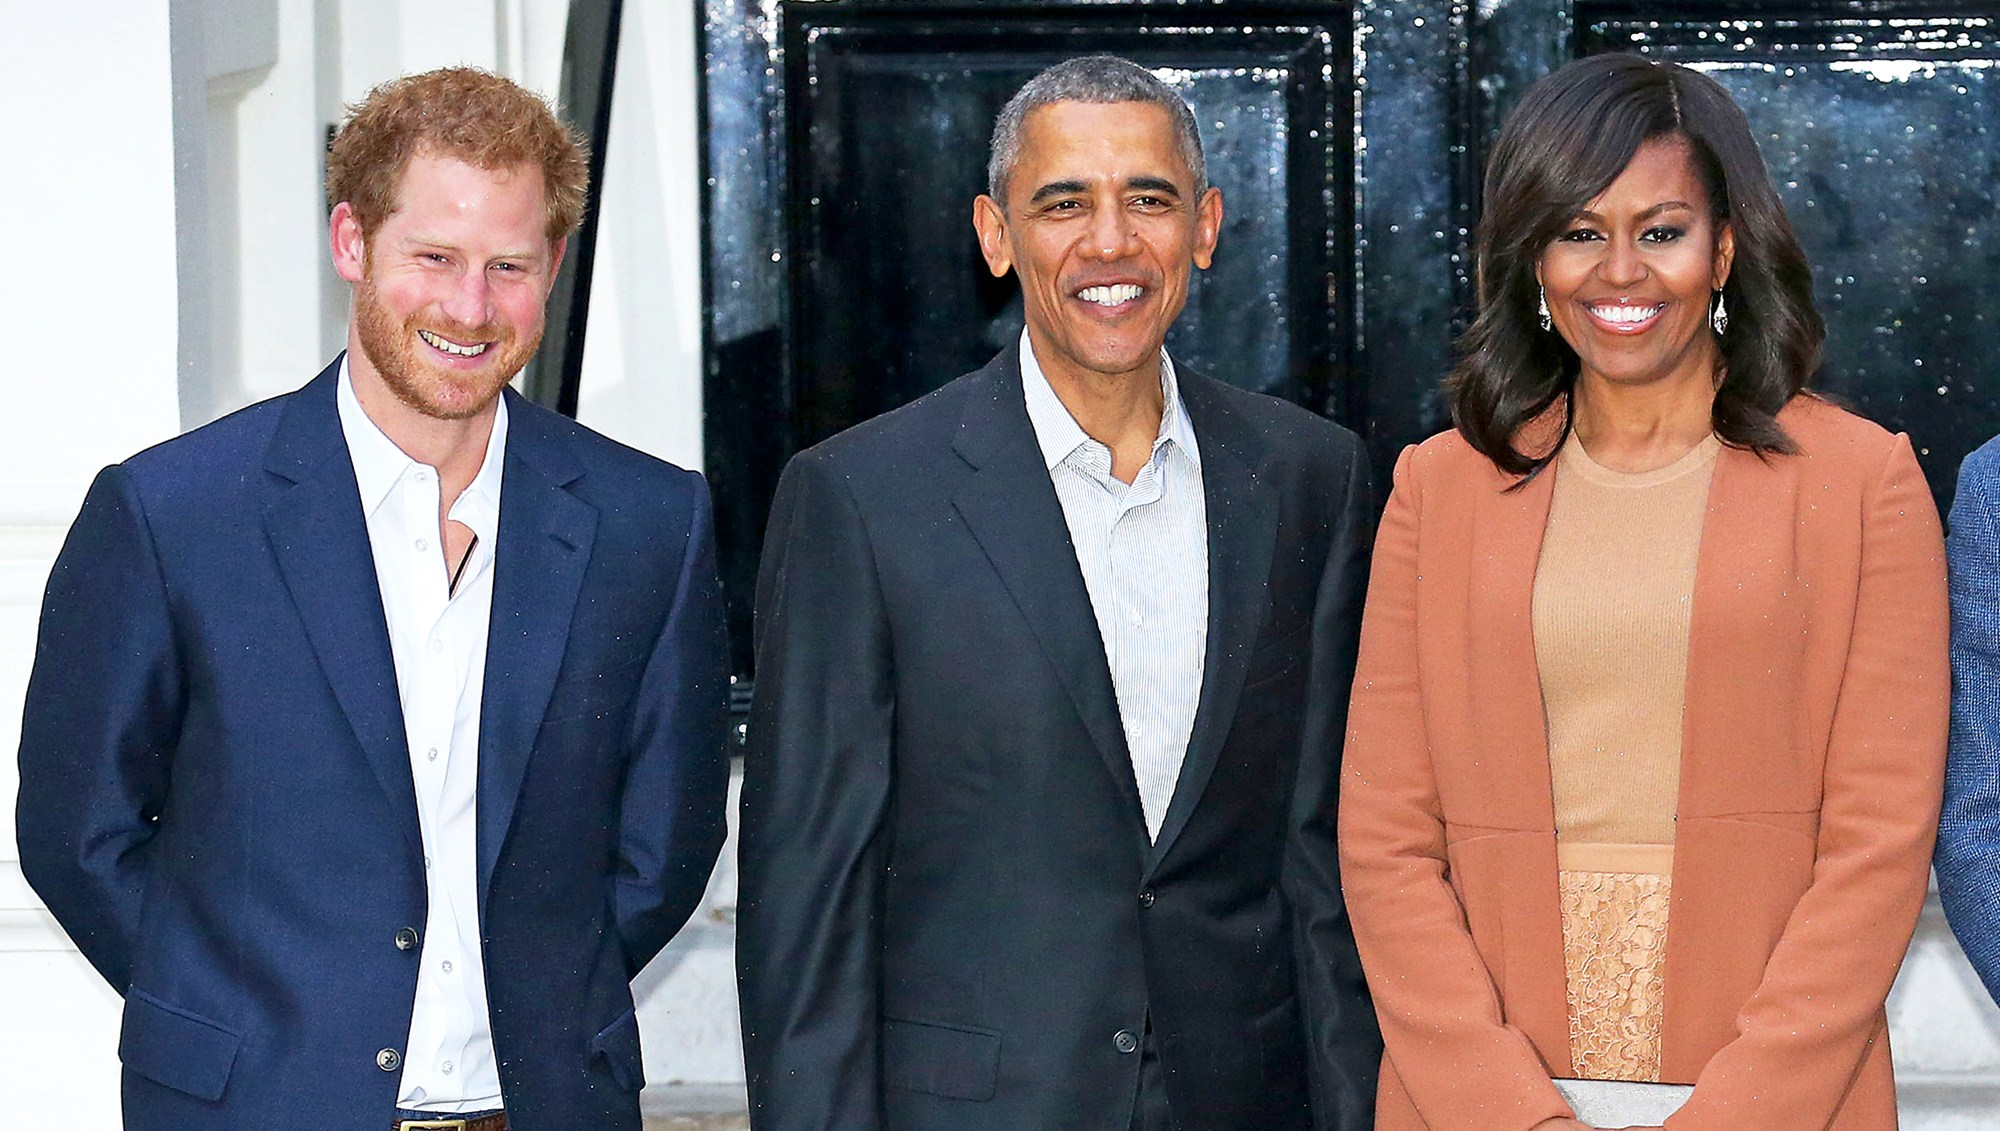 Prince Harry, Barack Obama and Michelle Obama attend a dinner at Kensington Palace on April 22, 2016 in London, England.